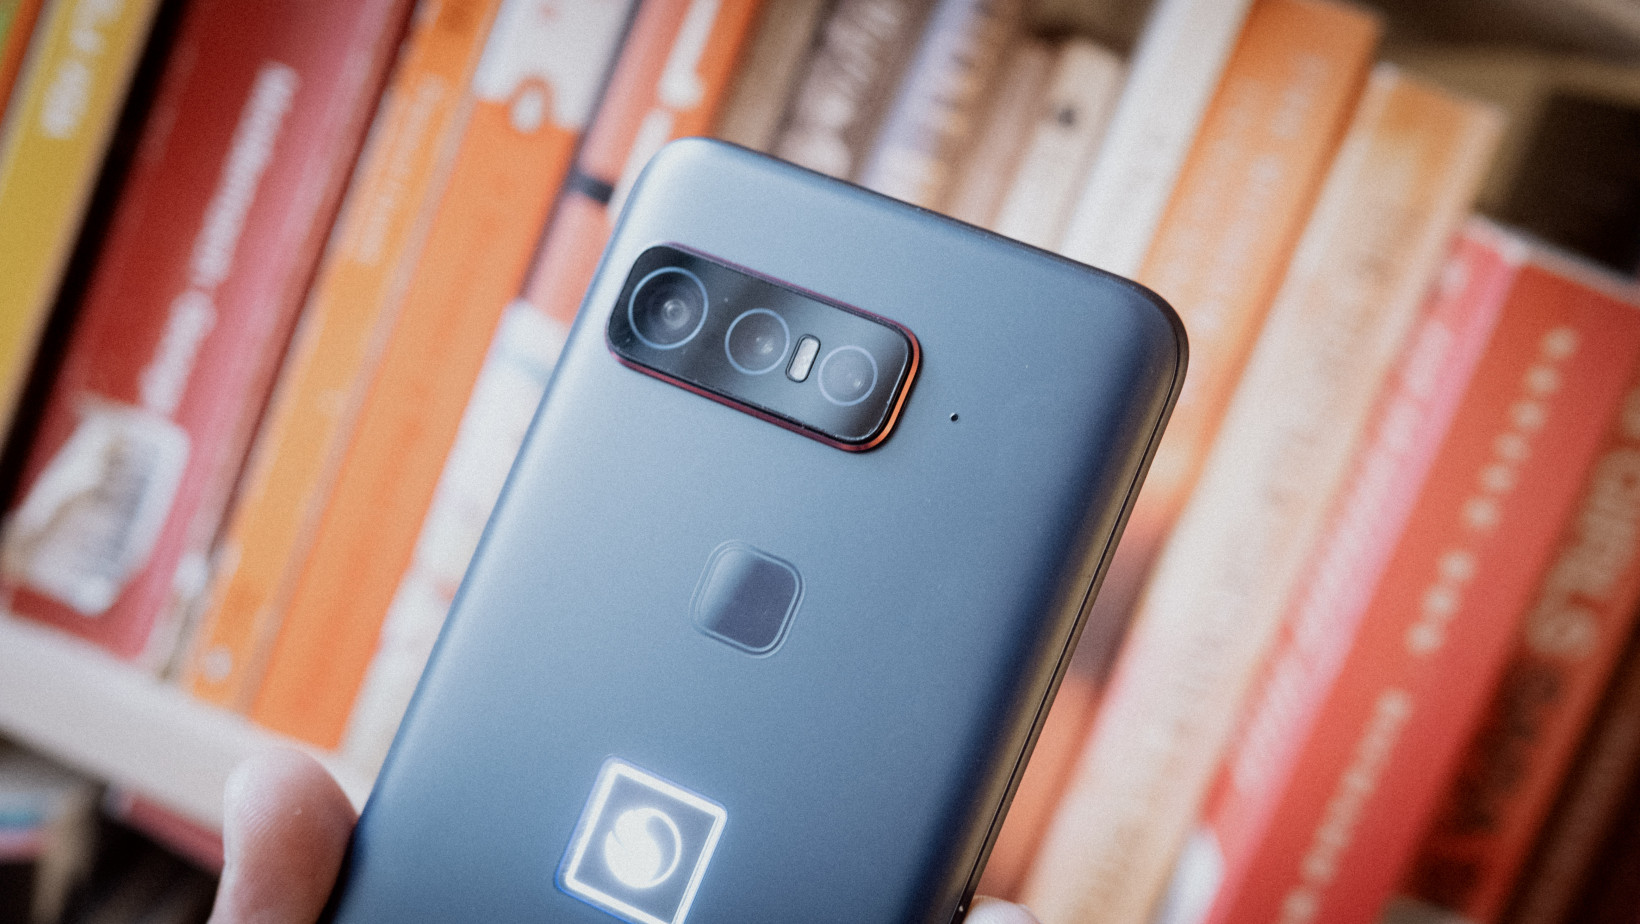 Qualcomm SSI Smartphone for Snapdragon Insiders by Asus (6 of 7)